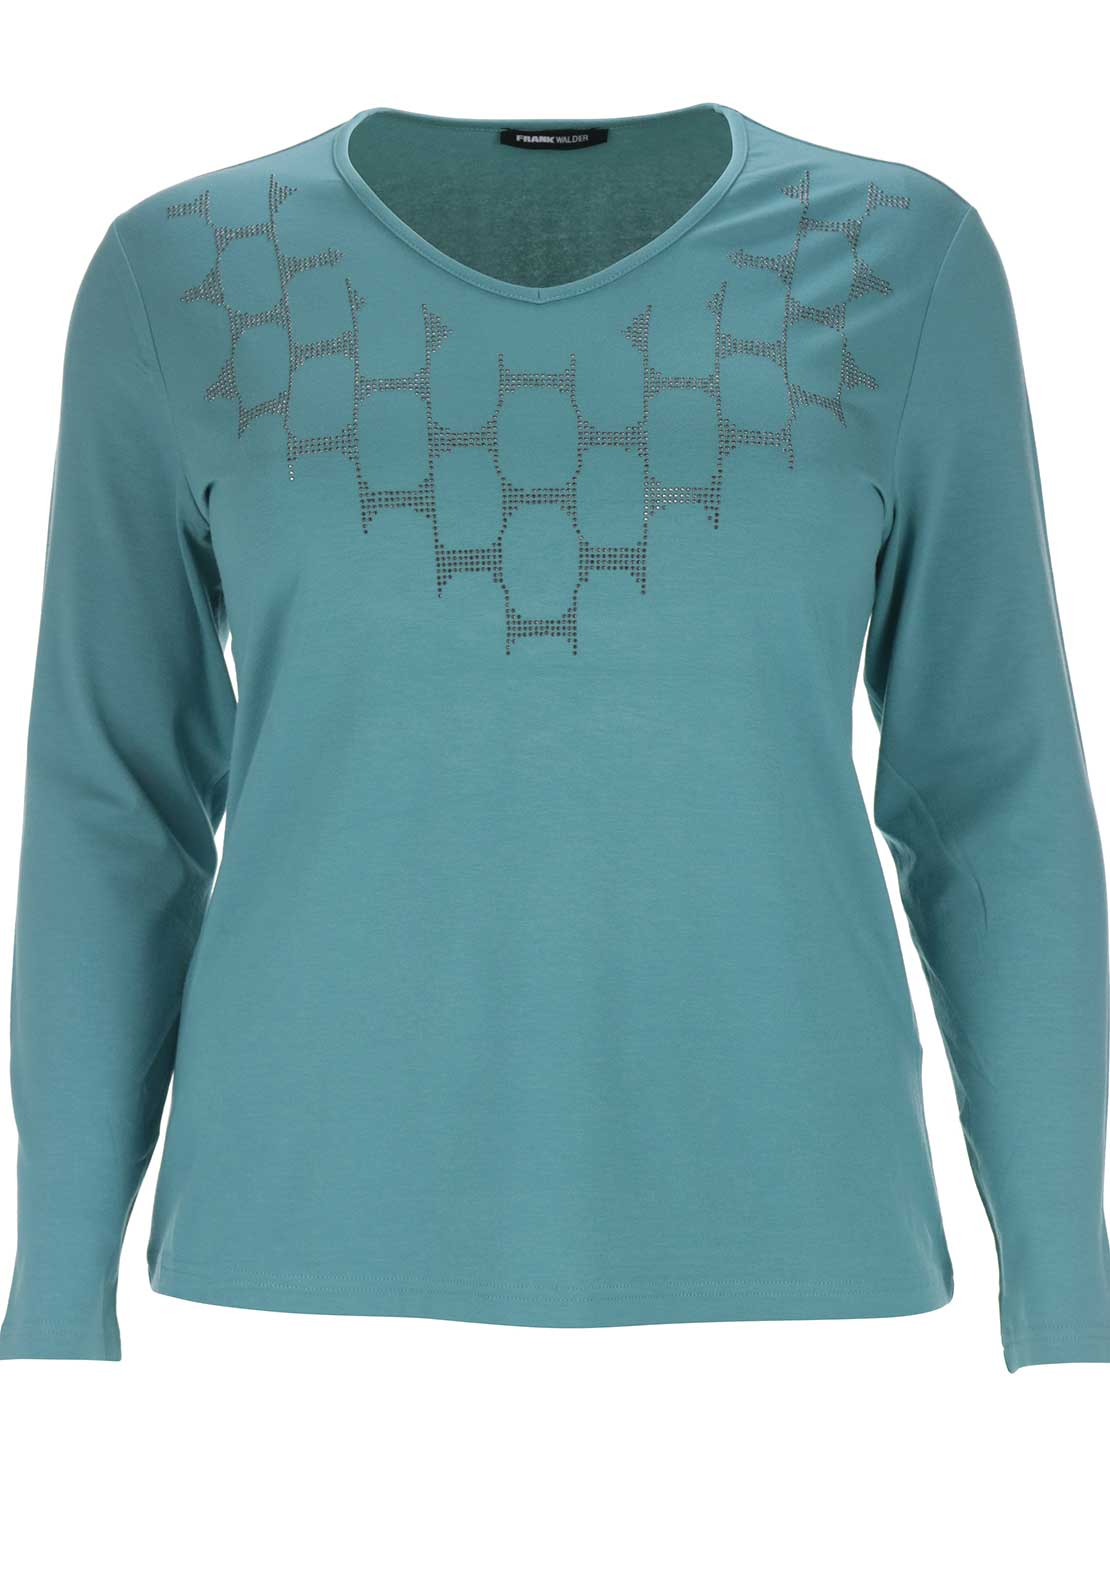 Frank Walder Embellished Top, Aqua Green